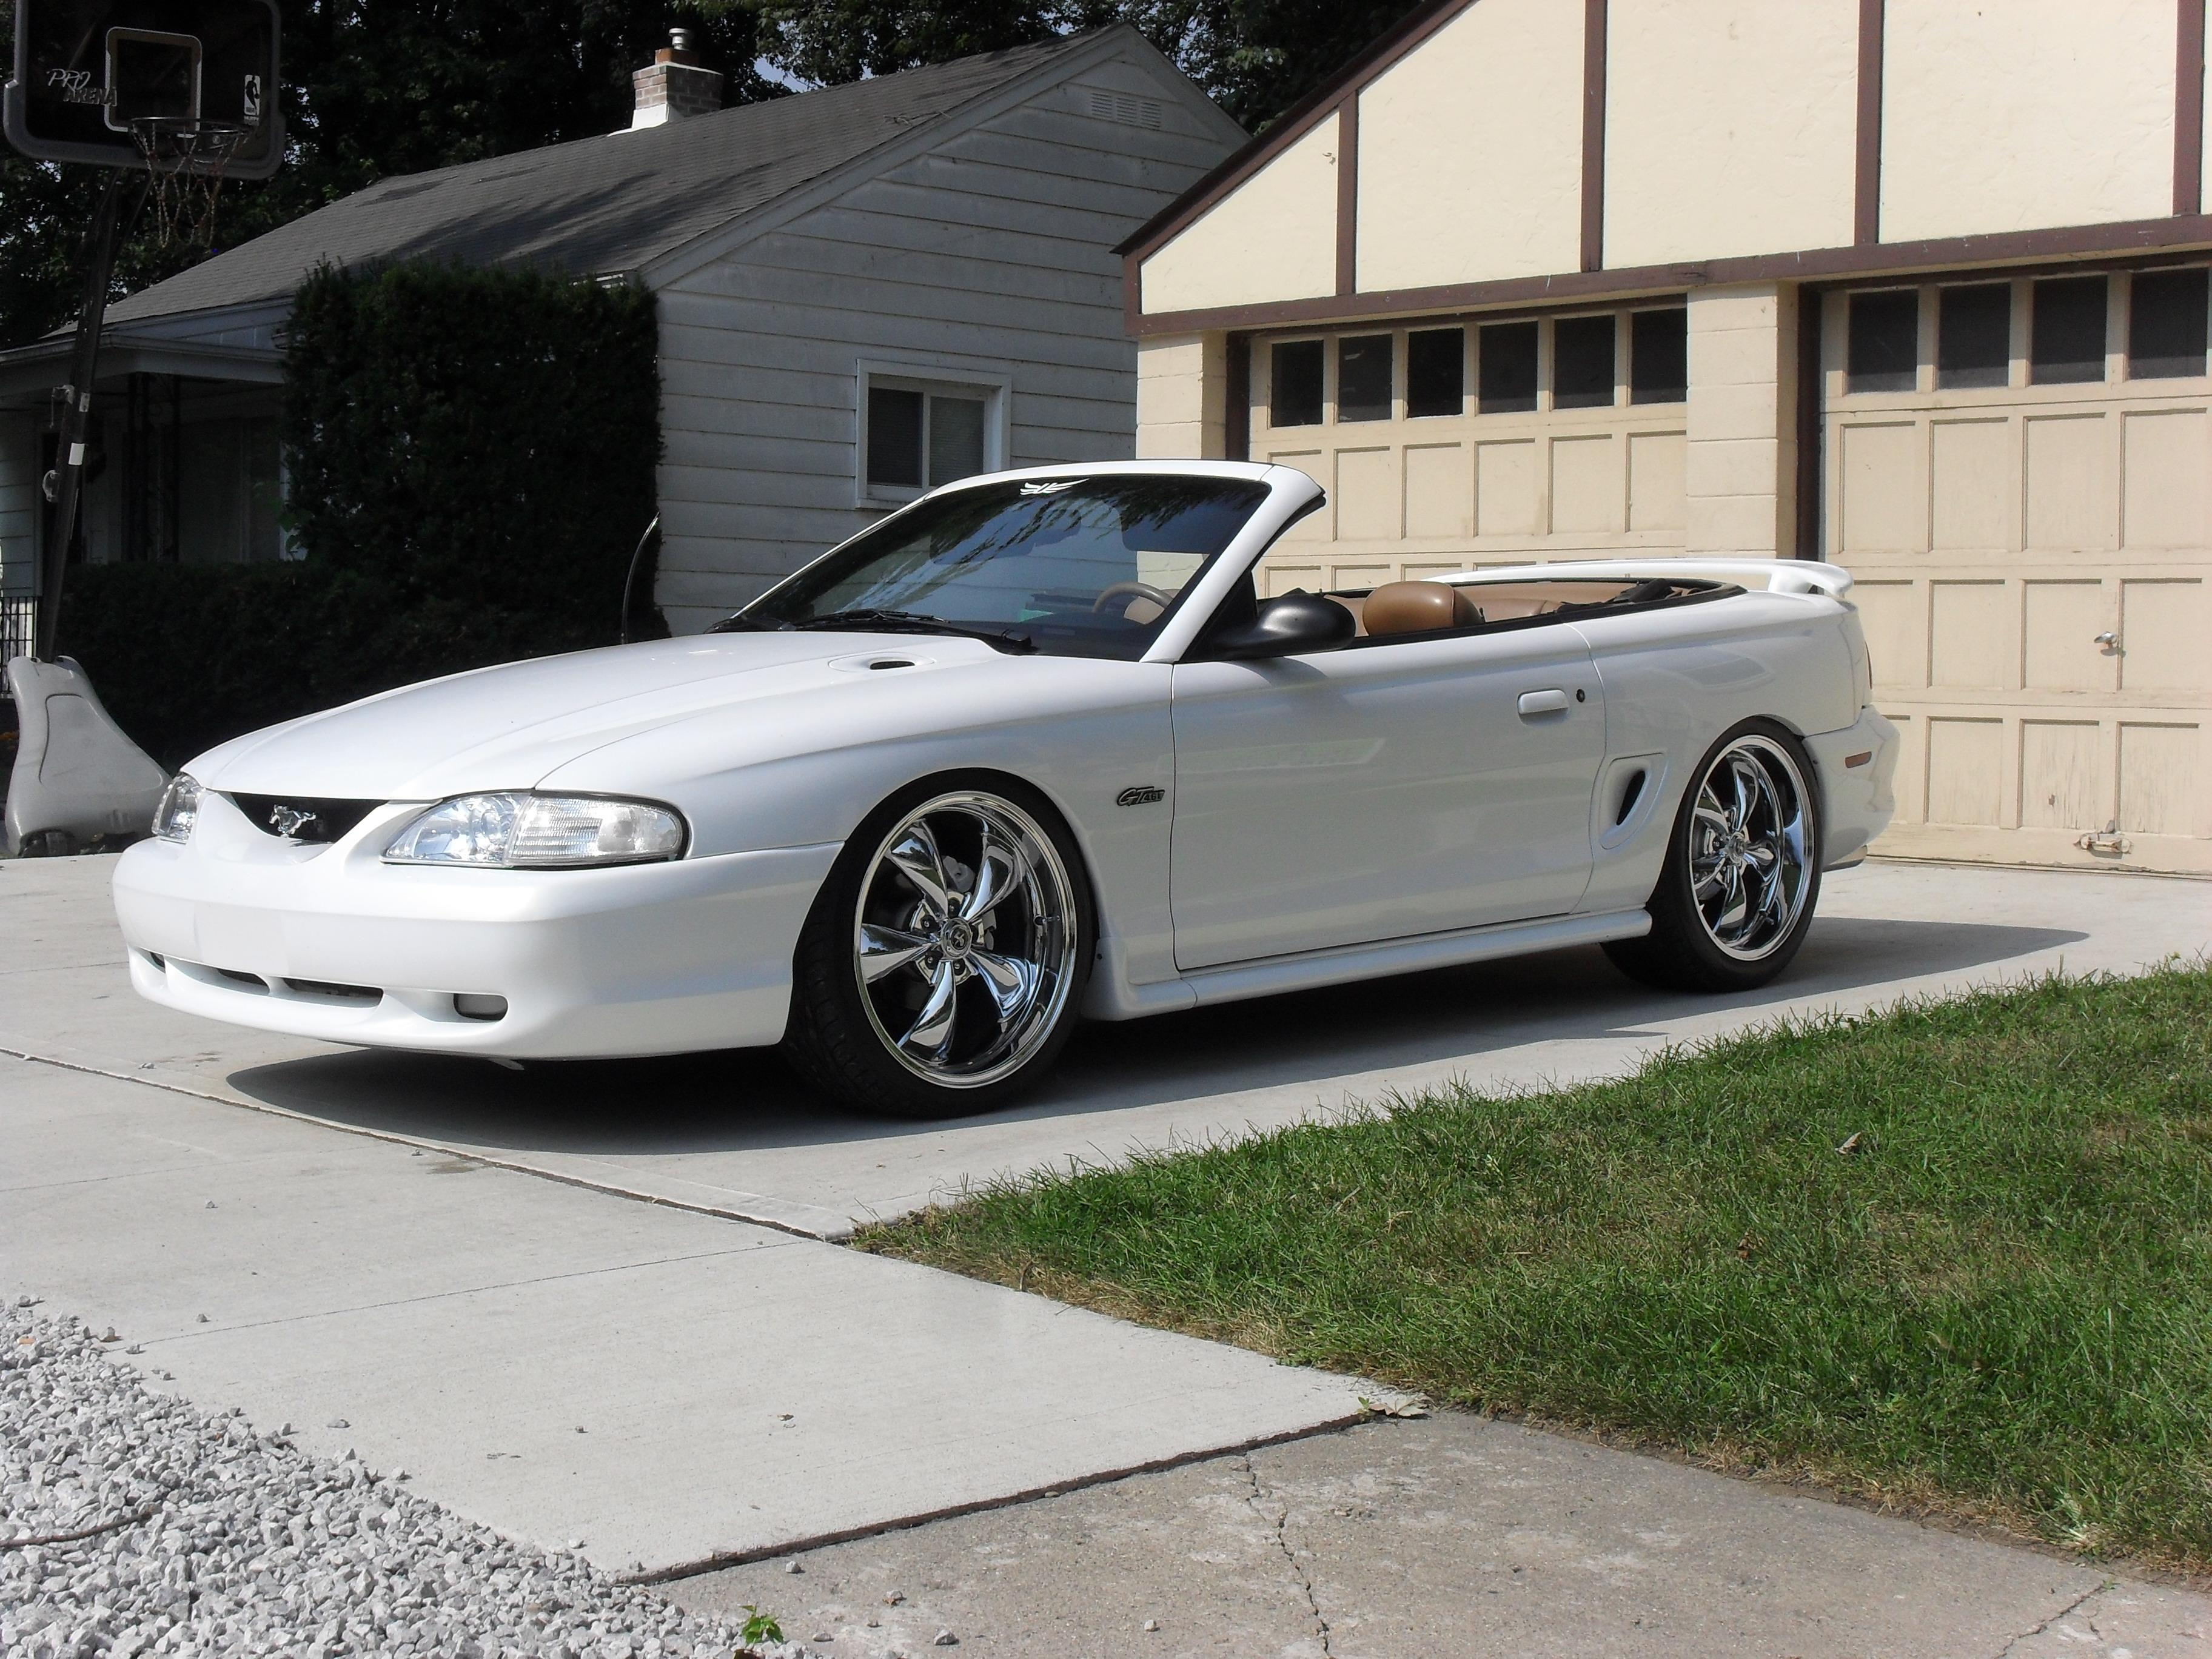 ford mustang 96 convertible